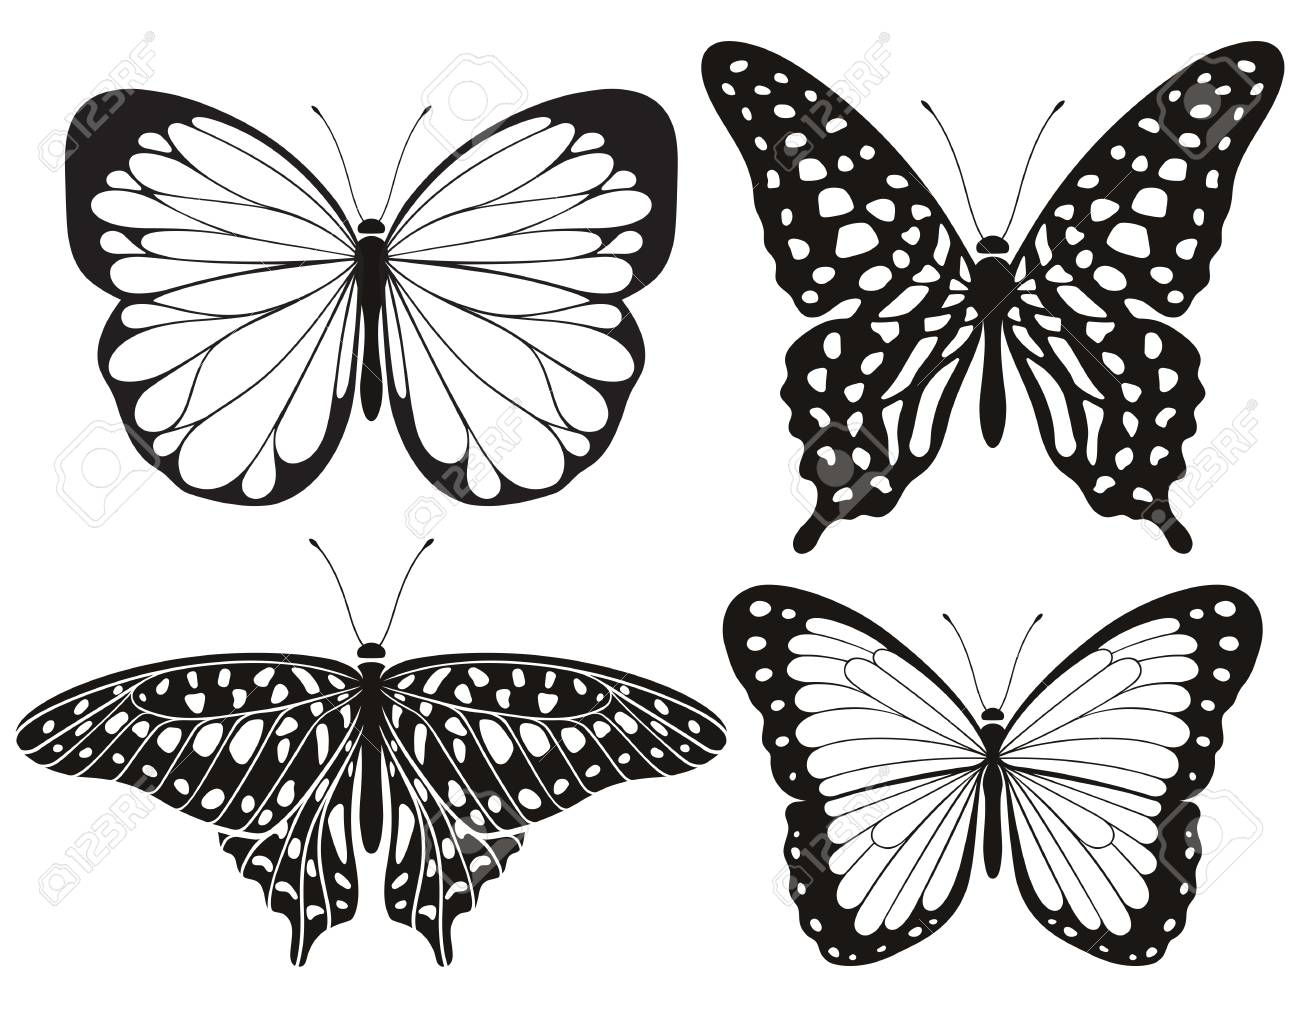 Butterfly silhouette icons set. Vector Illustrations. - 127666255